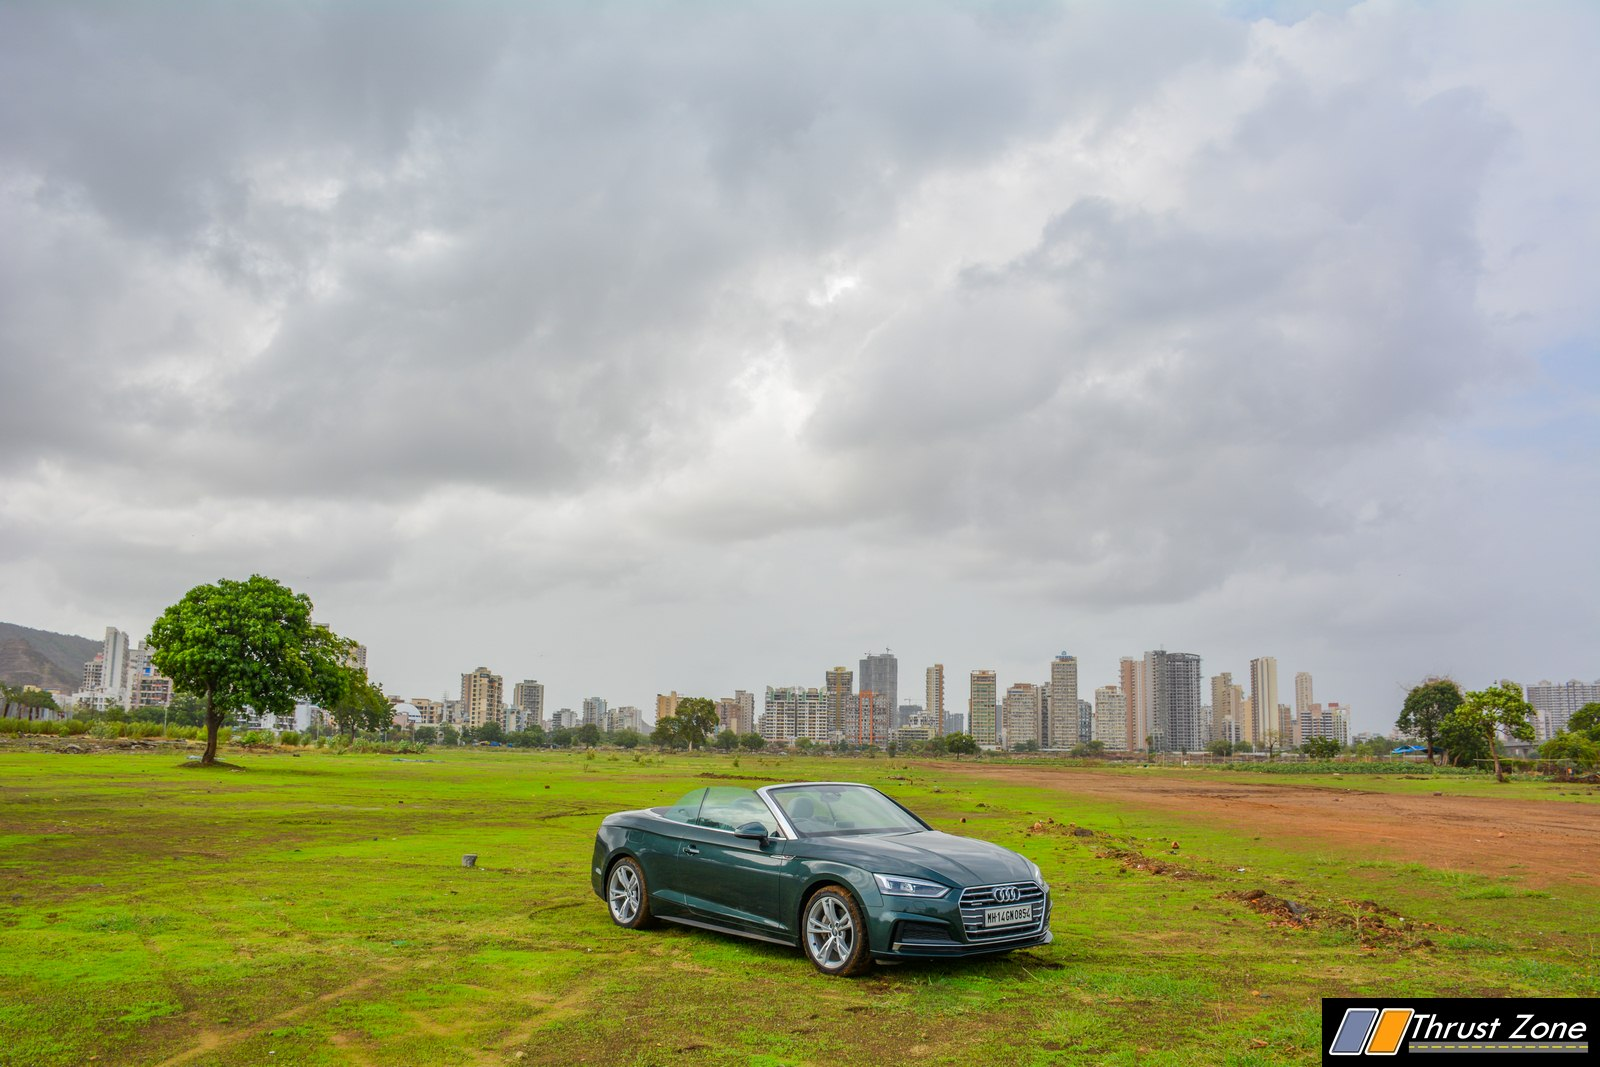 https://www.thrustzone.com/wp-content/uploads/2019/06/2019-Audi-A5-Cabriolet-Convertible-India-Diesel-Review-23.jpg